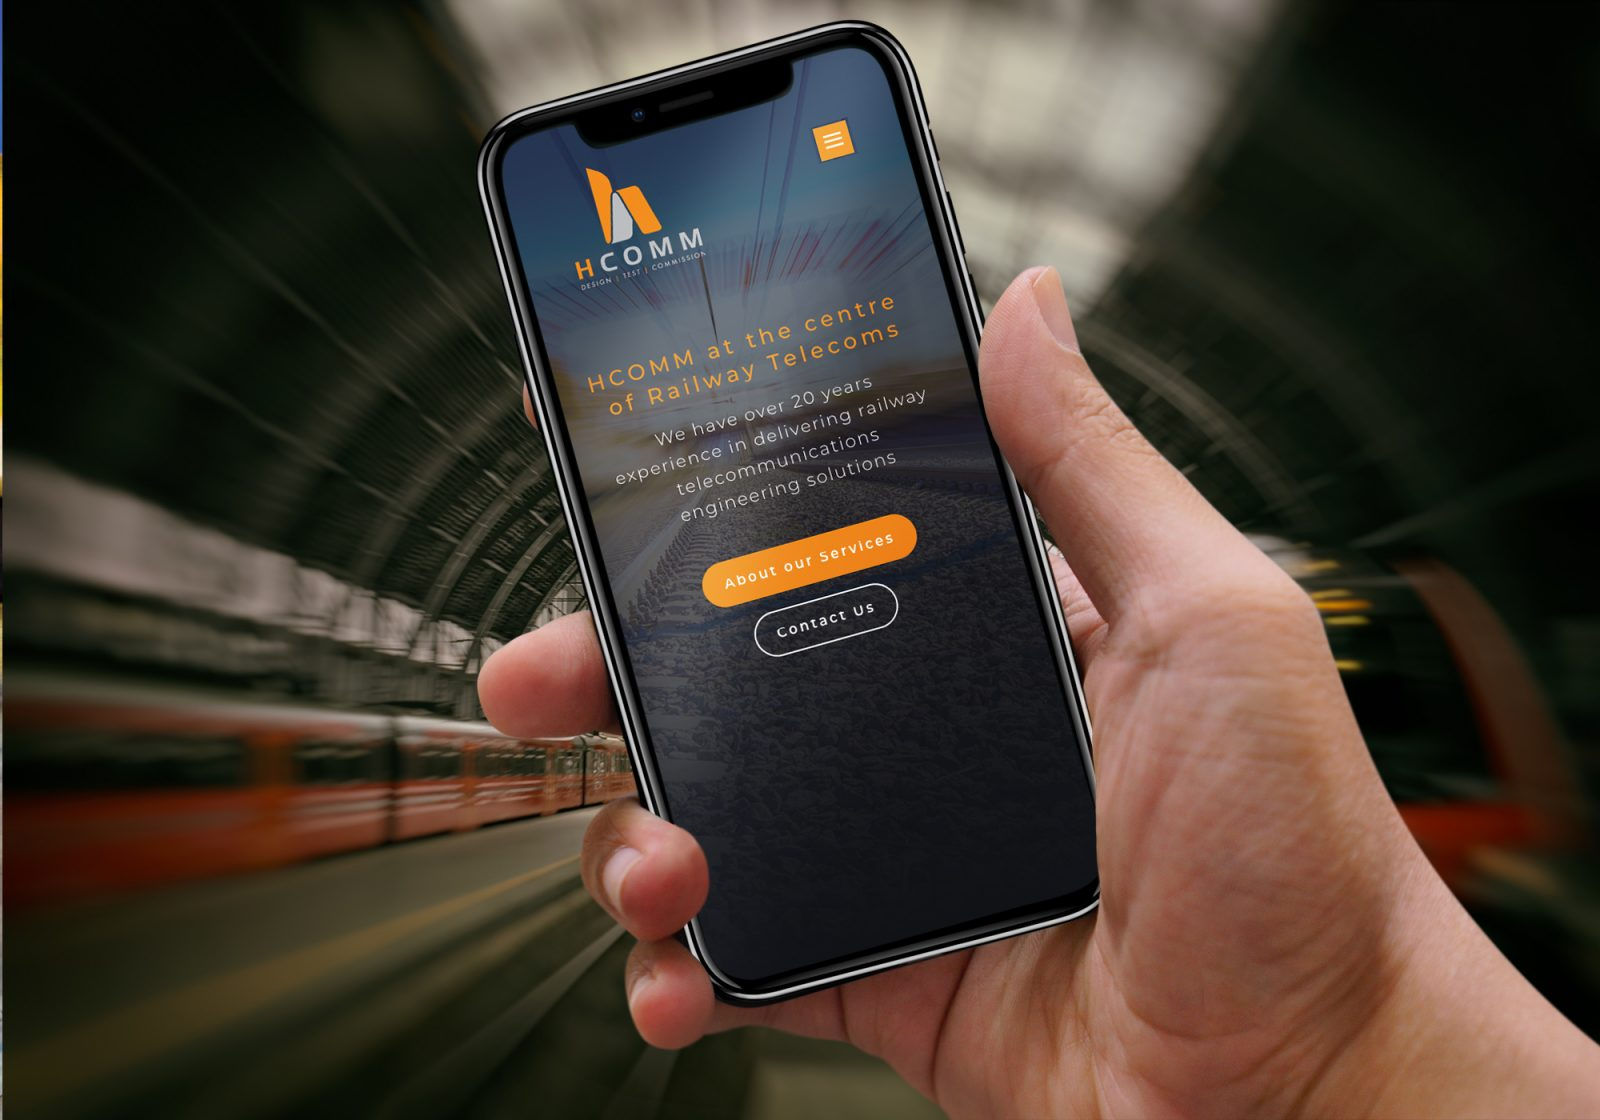 Hcomm's new website on a mobile phone with trains in the background